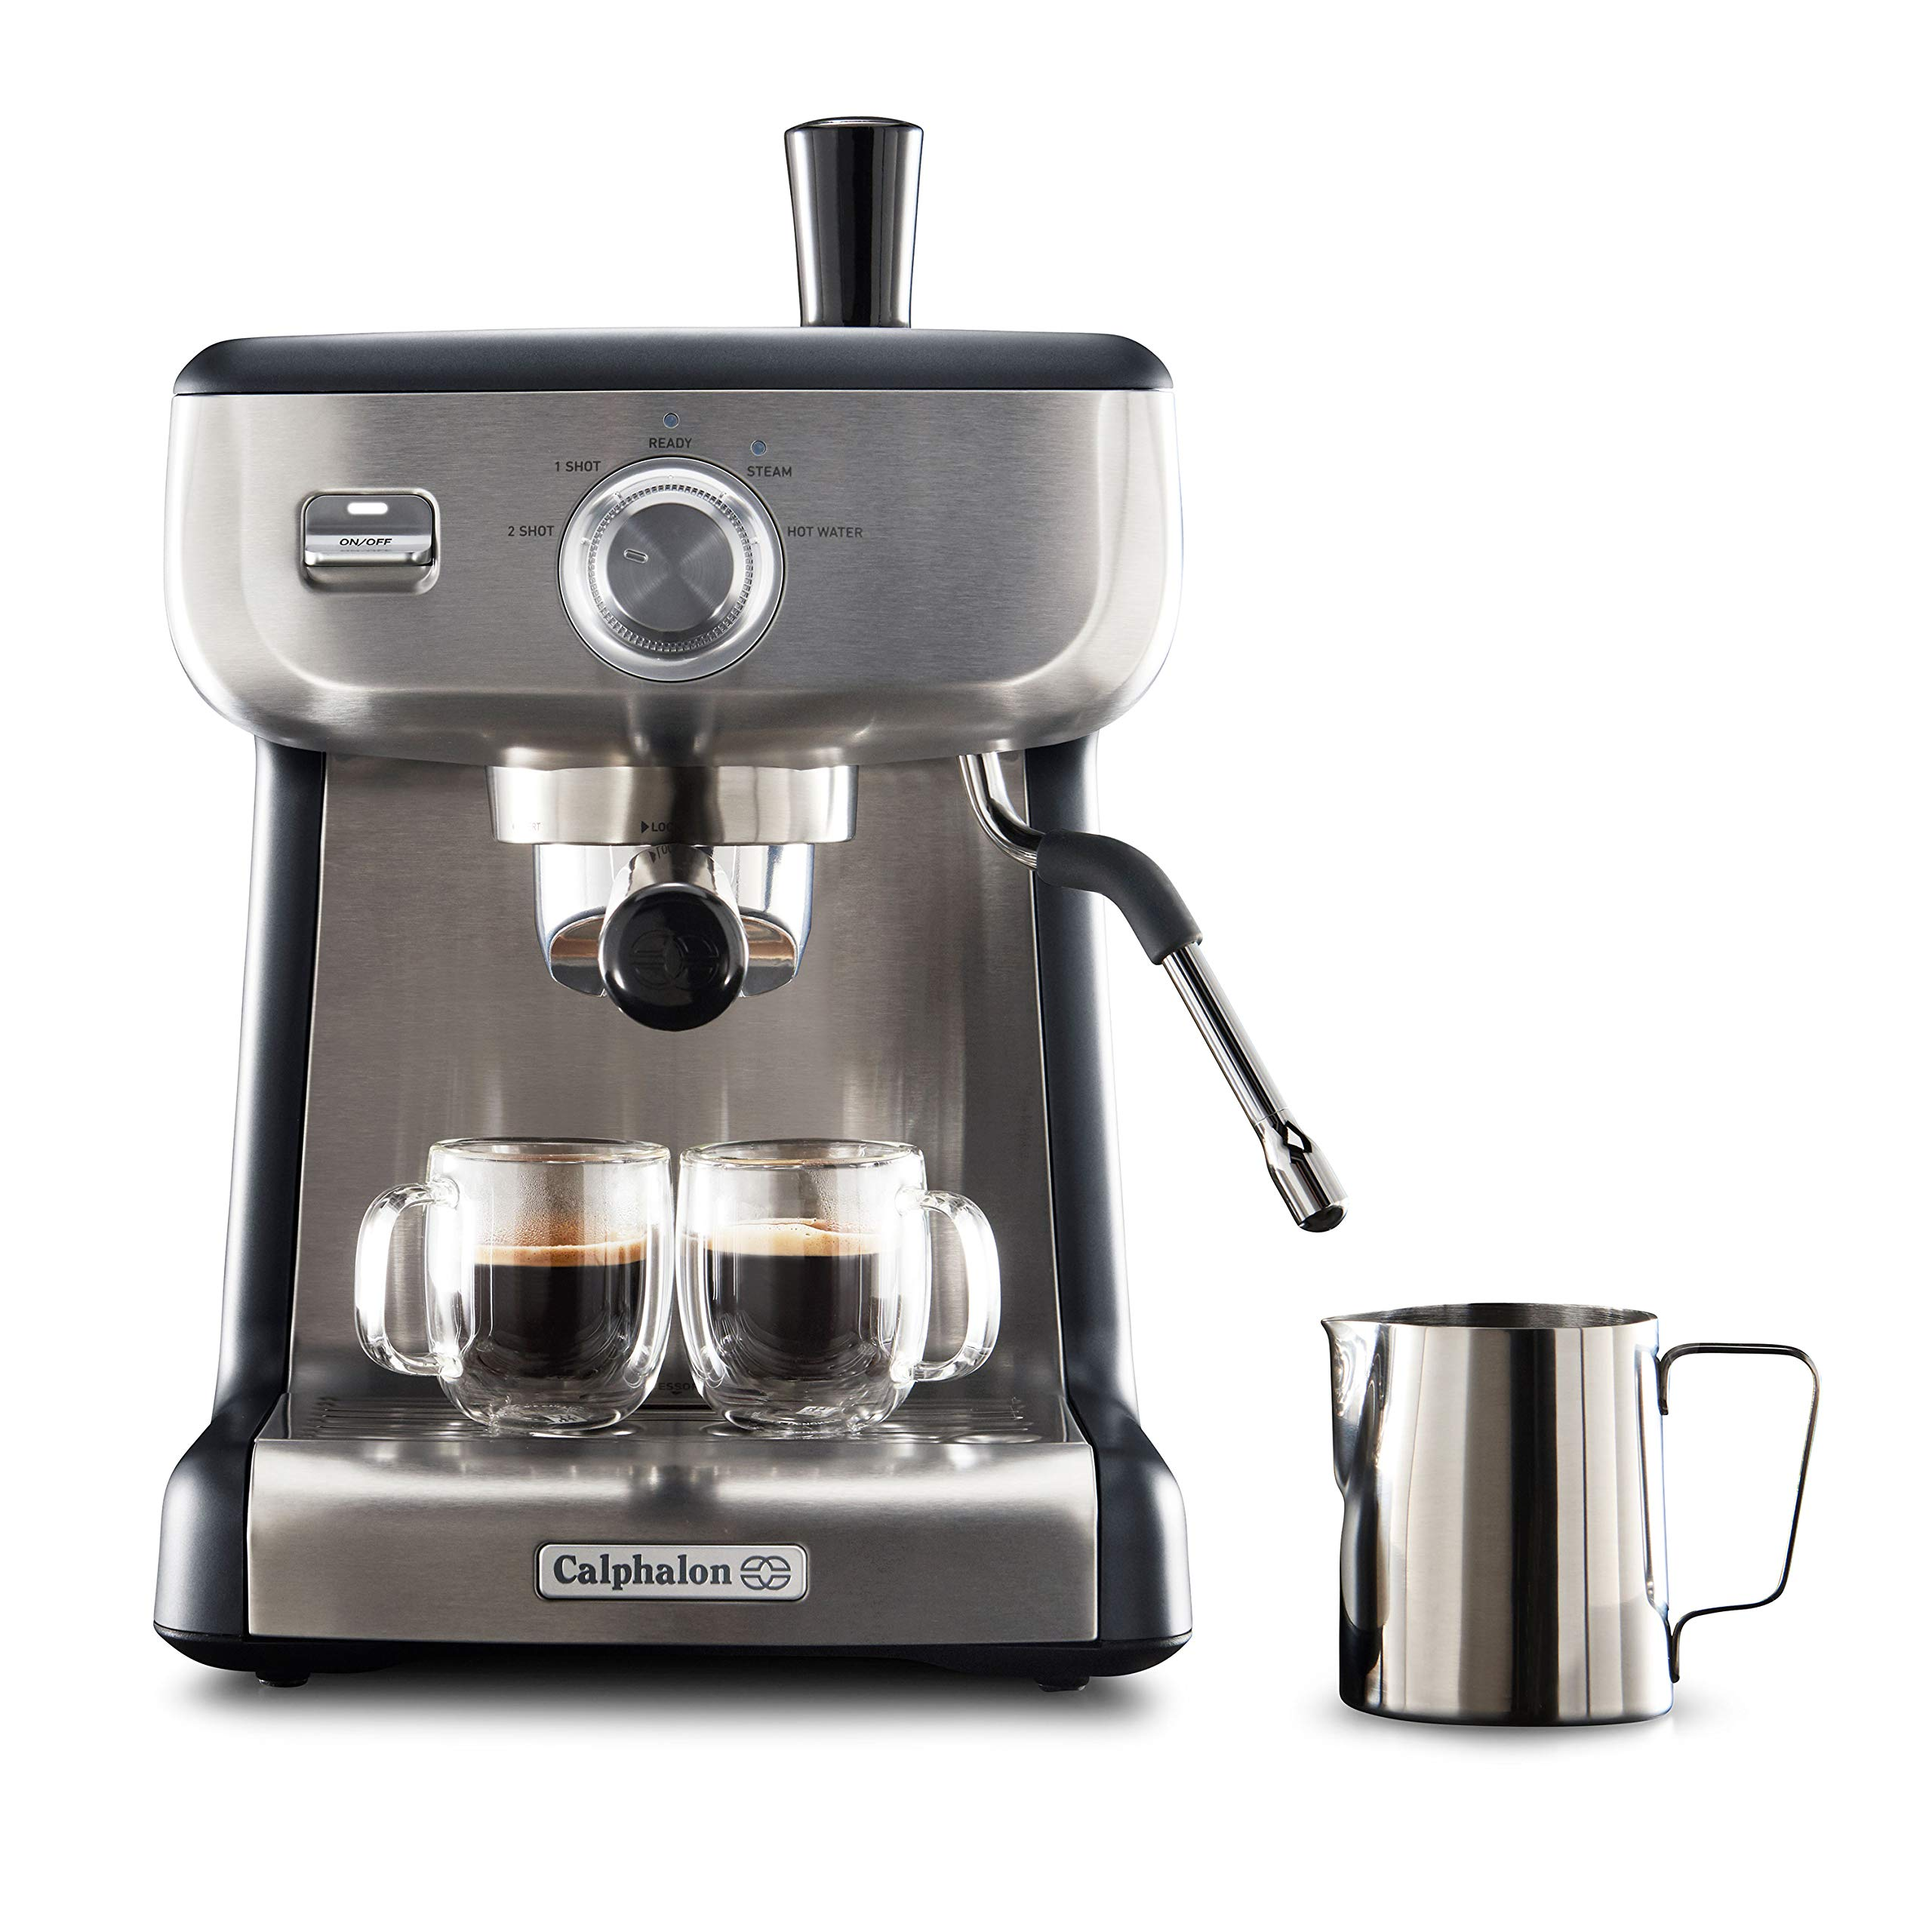 Calphalon BVCLECMP1 Temp iQ Espresso Machine